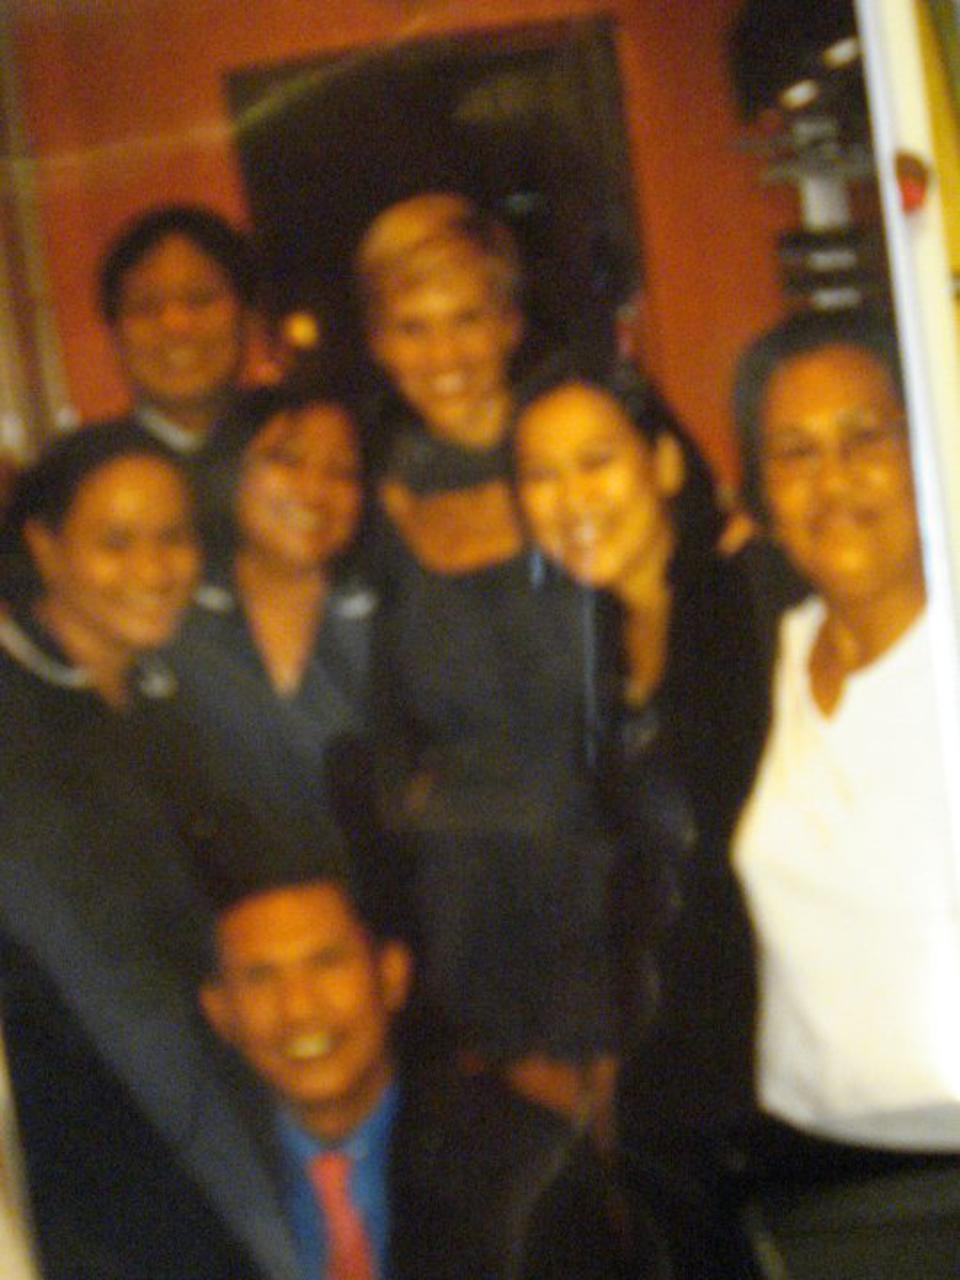 The Fontanillas, plus other unidentified individuals, with Hilary Swank (center, blonde hair.)